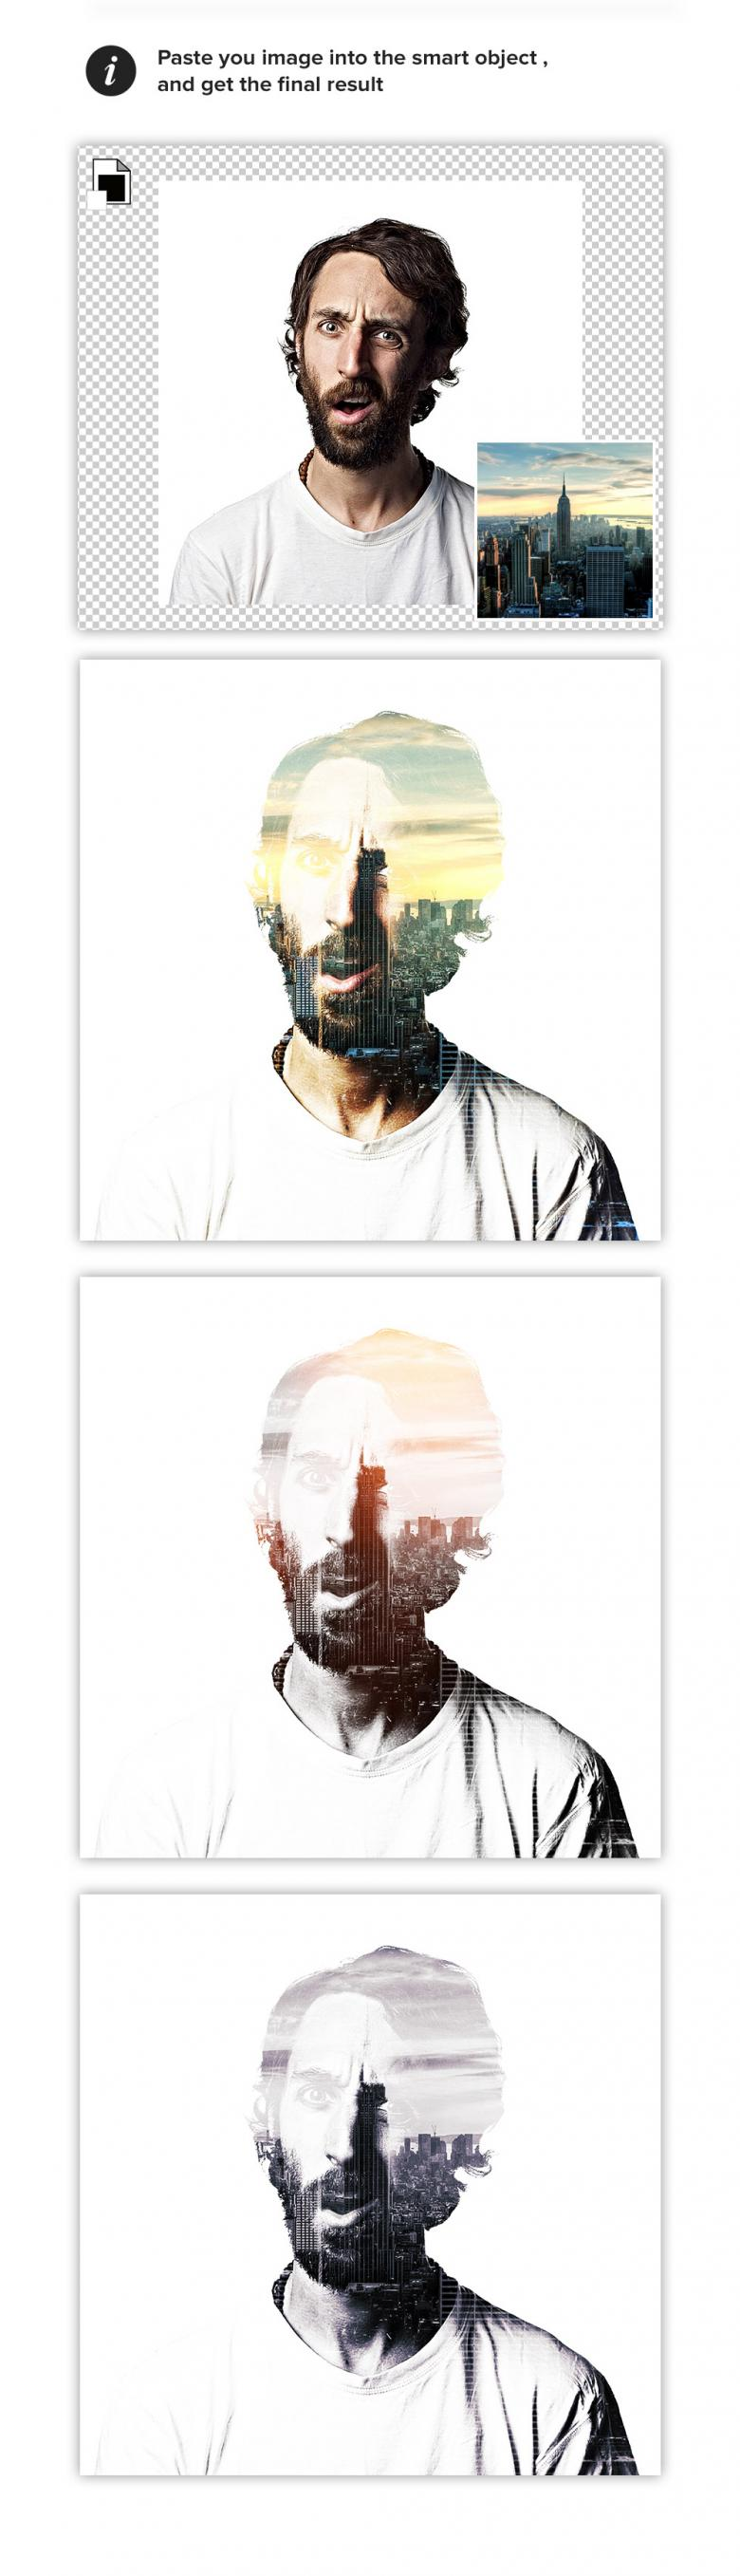 Double Exposure Maker PSD Template